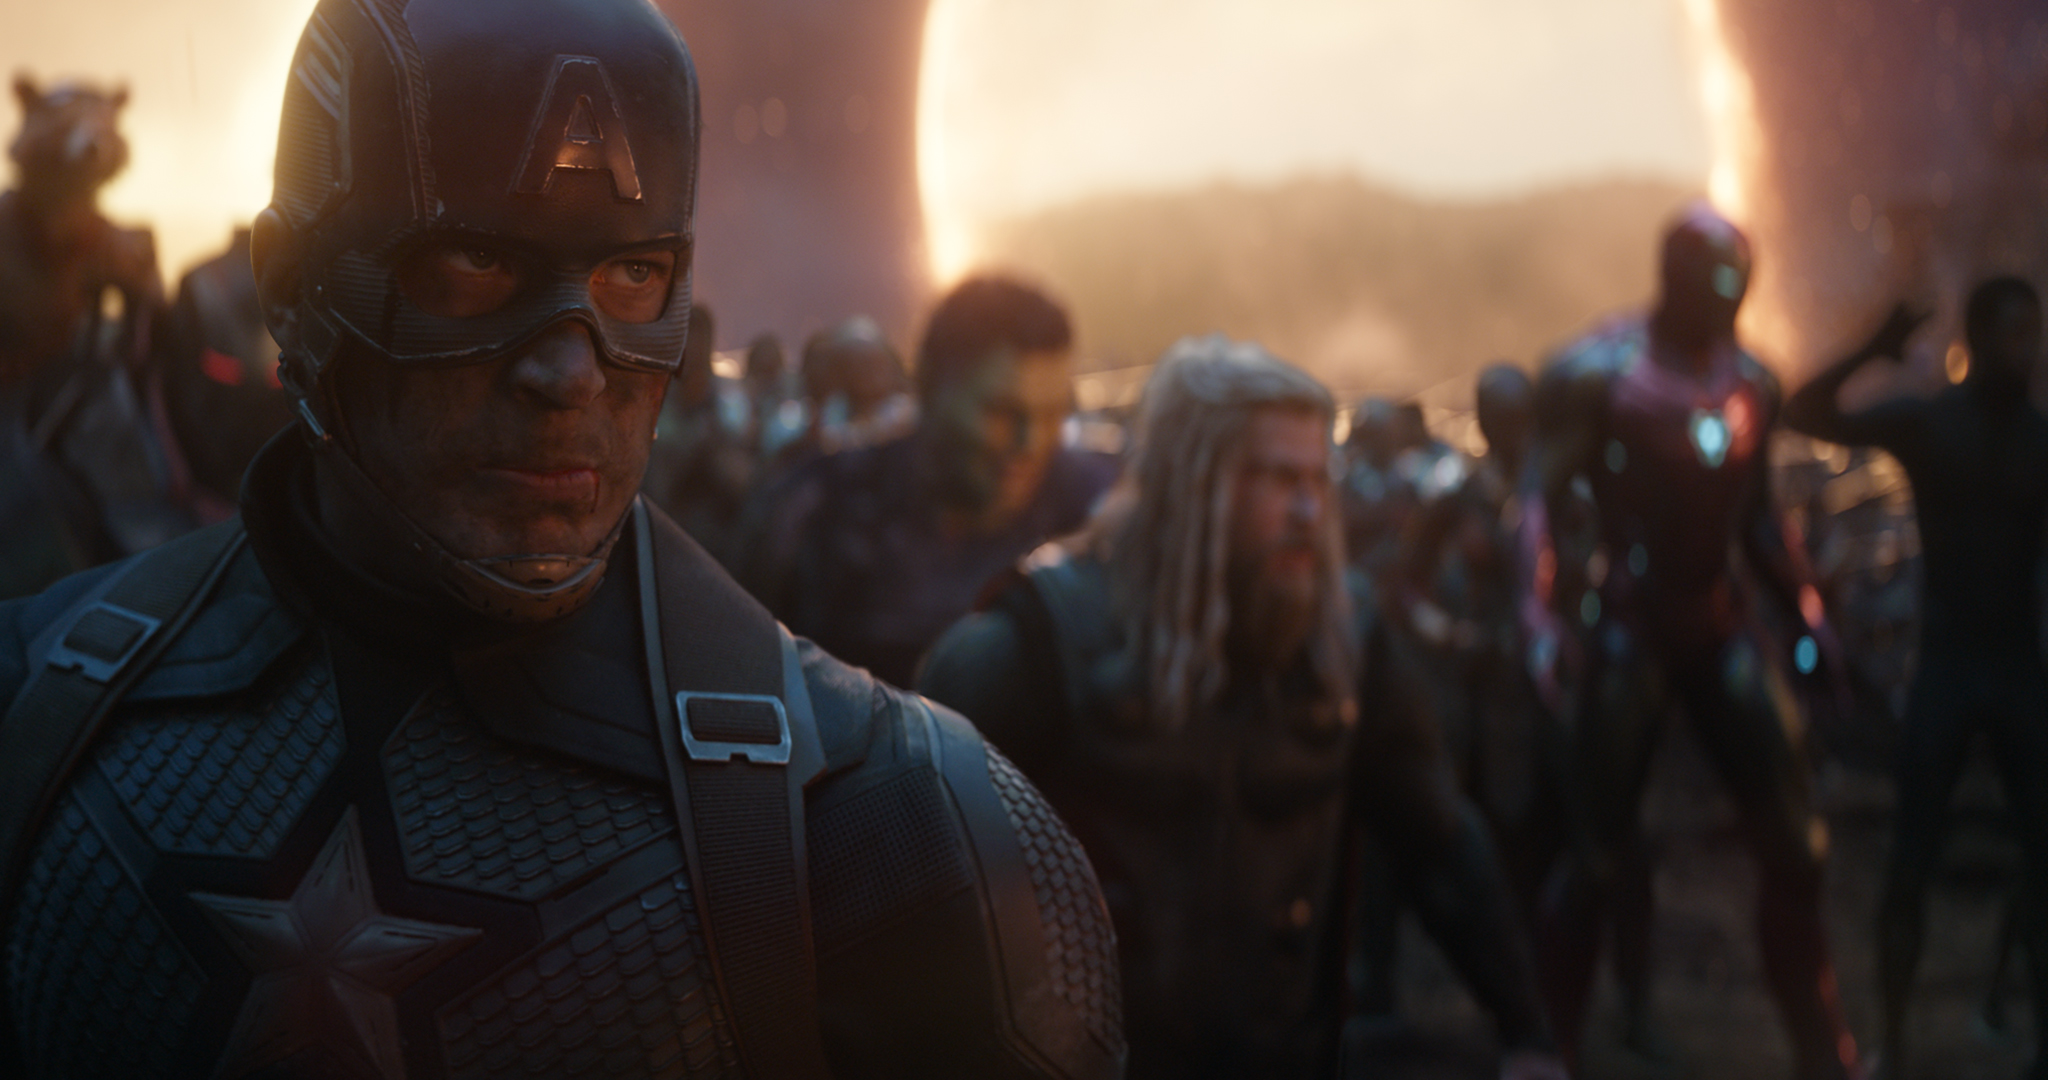 Avengers: Endgame Is Returning To Theatres With New Footage – But We Probably Won't Get To See It